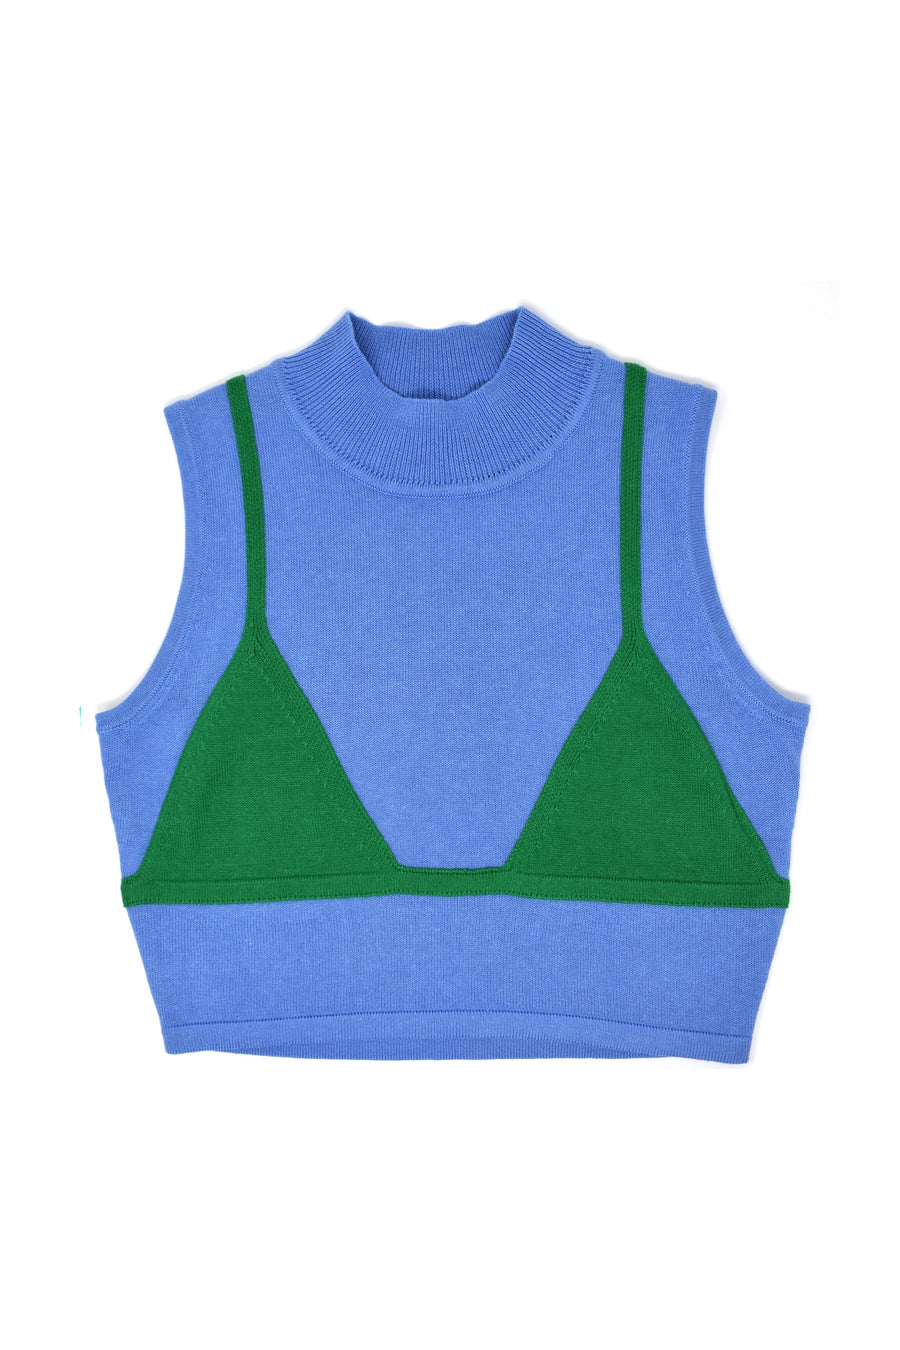 Bikini Knit Top Blue/Green